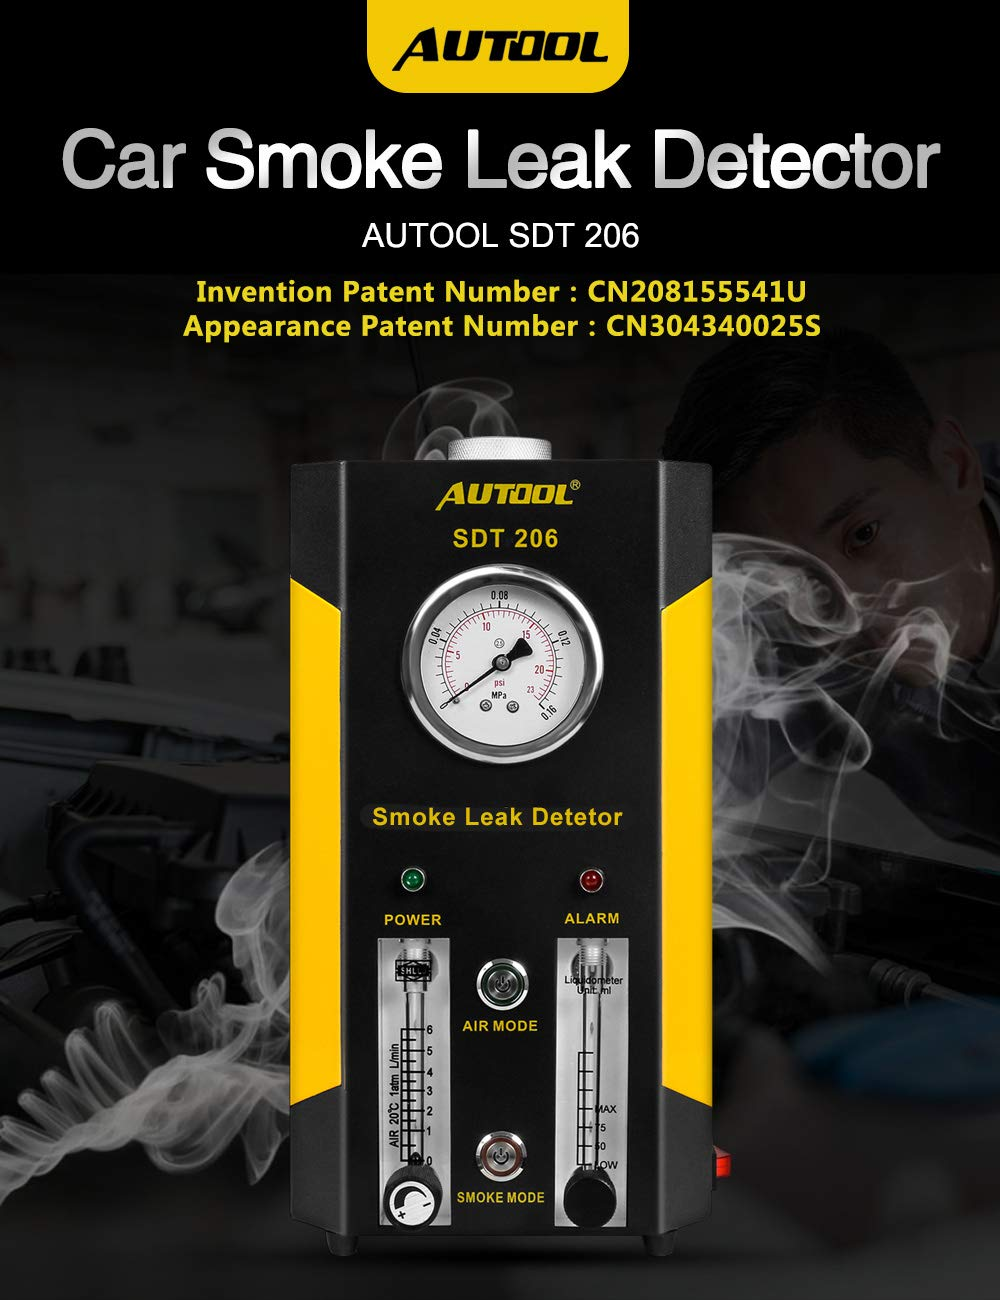 AUTOOL Automotive Pipes Fuel Leakage Detector Diagnositc Tester EVAP Leaks Testing Machine for 12V Vehicle/Motorcycles/Boat (Newest Dual Modes) by AUTOOL (Image #7)